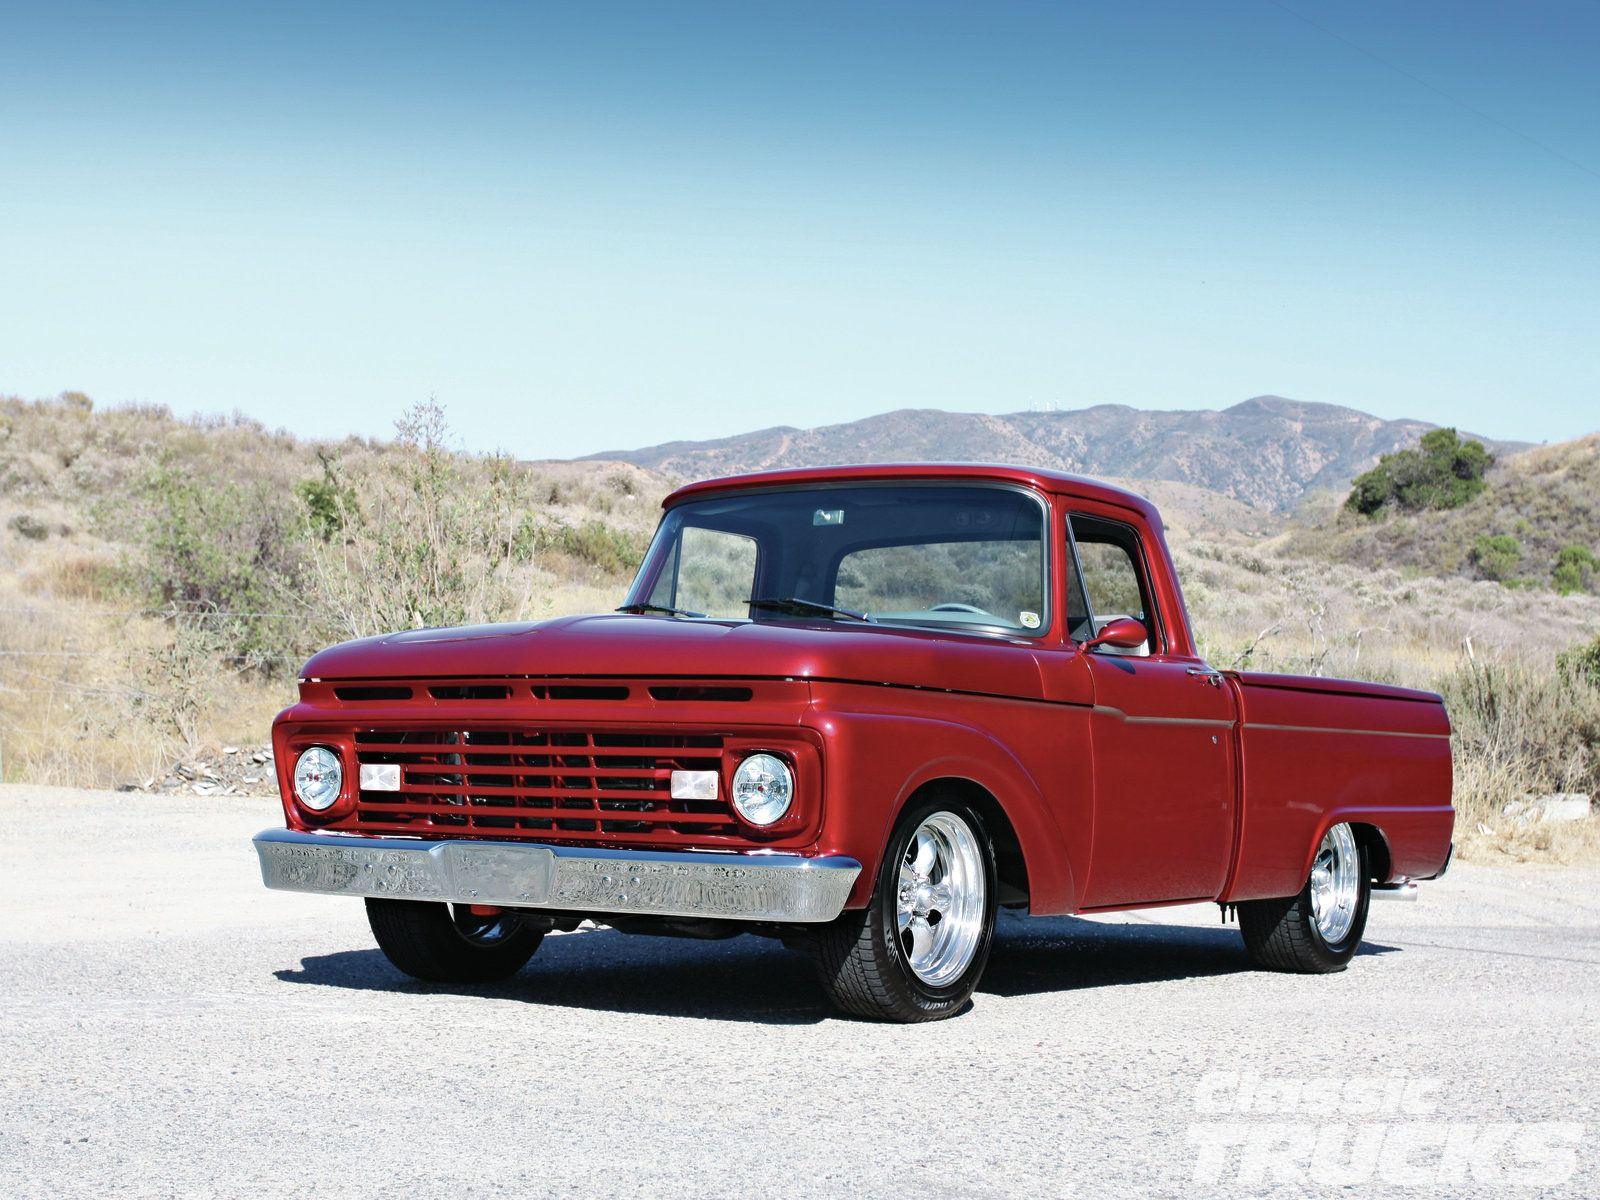 1955 ford f100 trucks for sale used cars on oodle autos post - 1963 Ford F 100 If You Love Something Let It Go Kevin